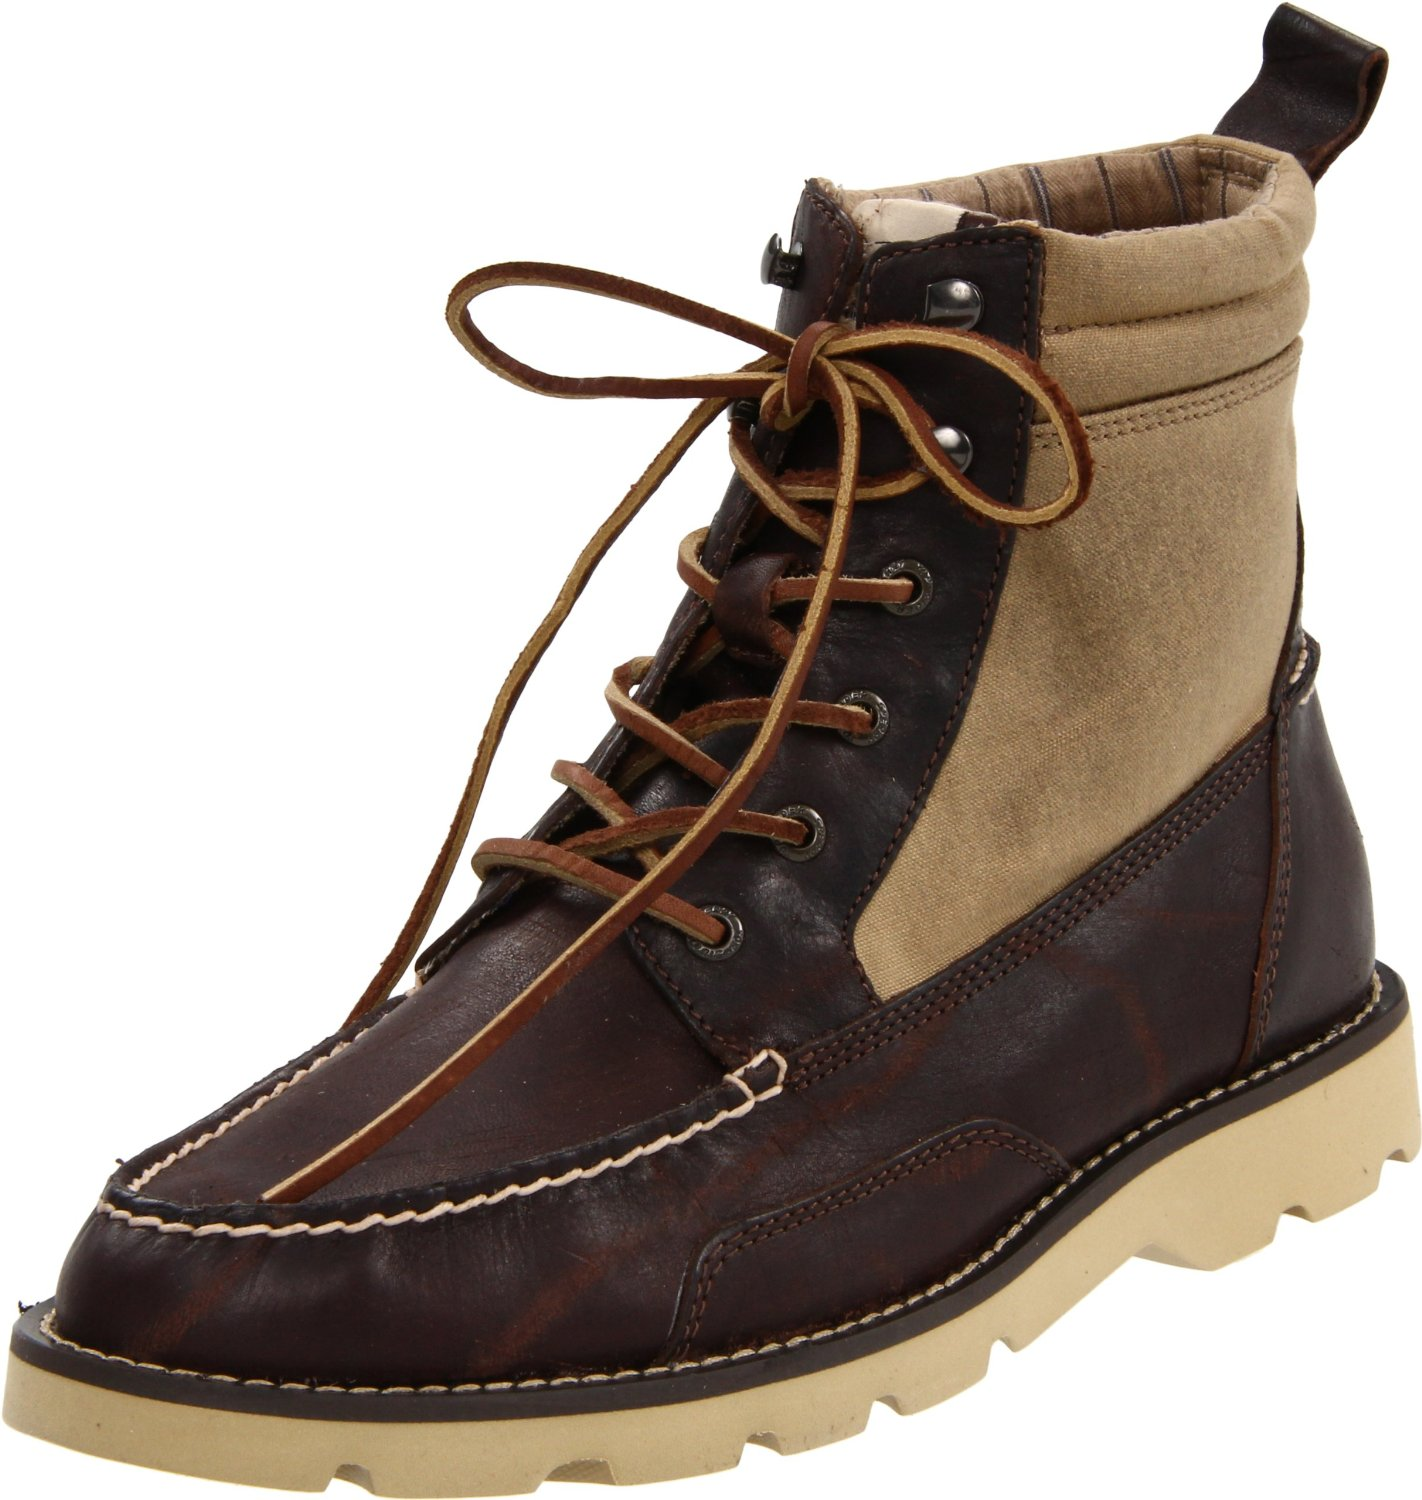 sperry top sider mens shipyard rigger boot in brown for